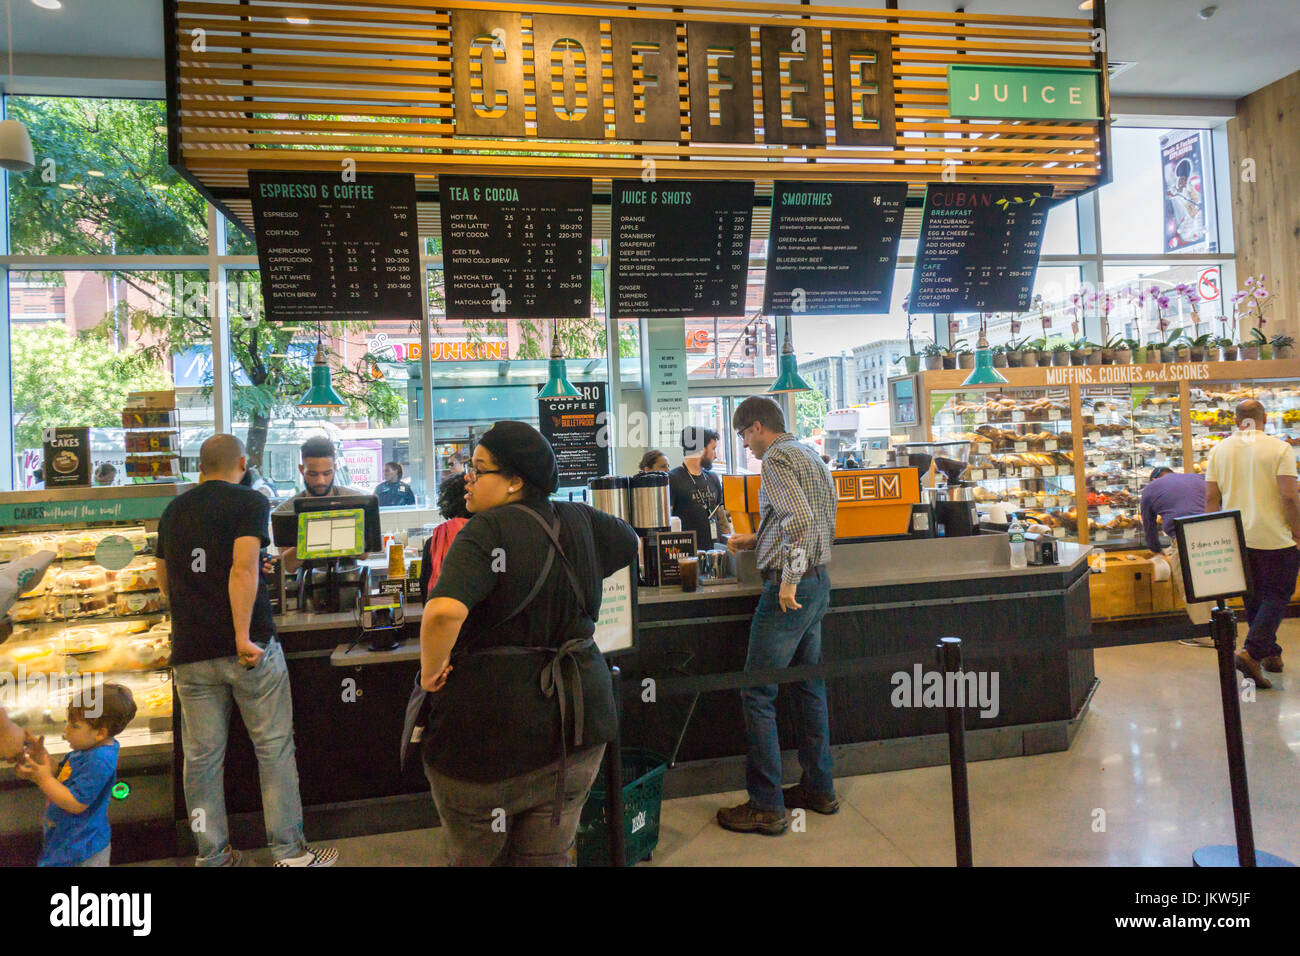 Whole Foods Harlem